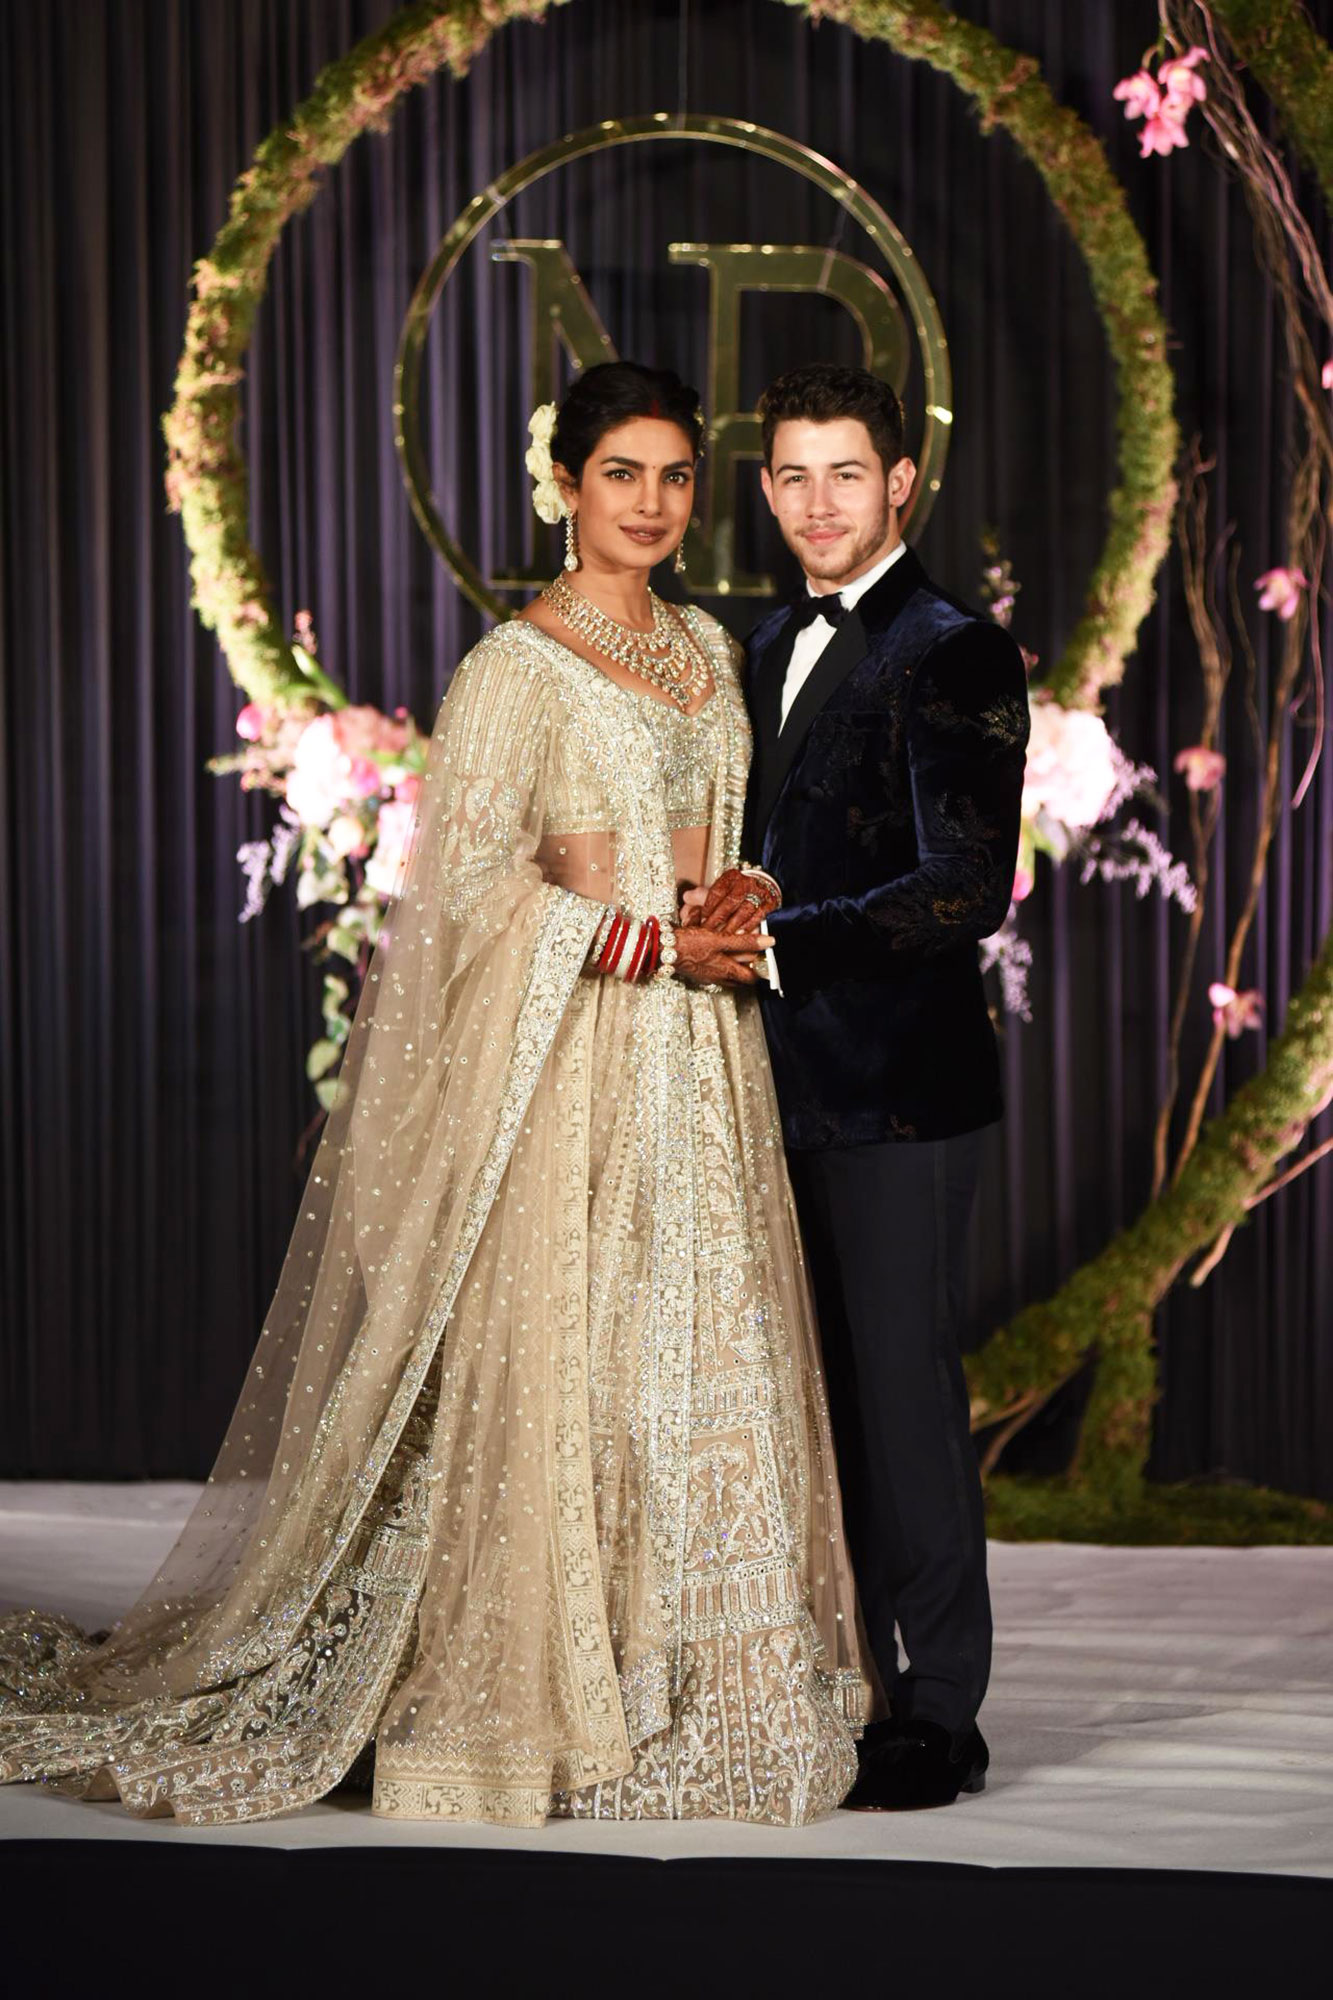 Celebrity Couples of 2018 Nick Jonas and Priyanka Chopra - Nick Jonas and Priyanka Chopra are seen having another marriage ceremony in Delhi, India.